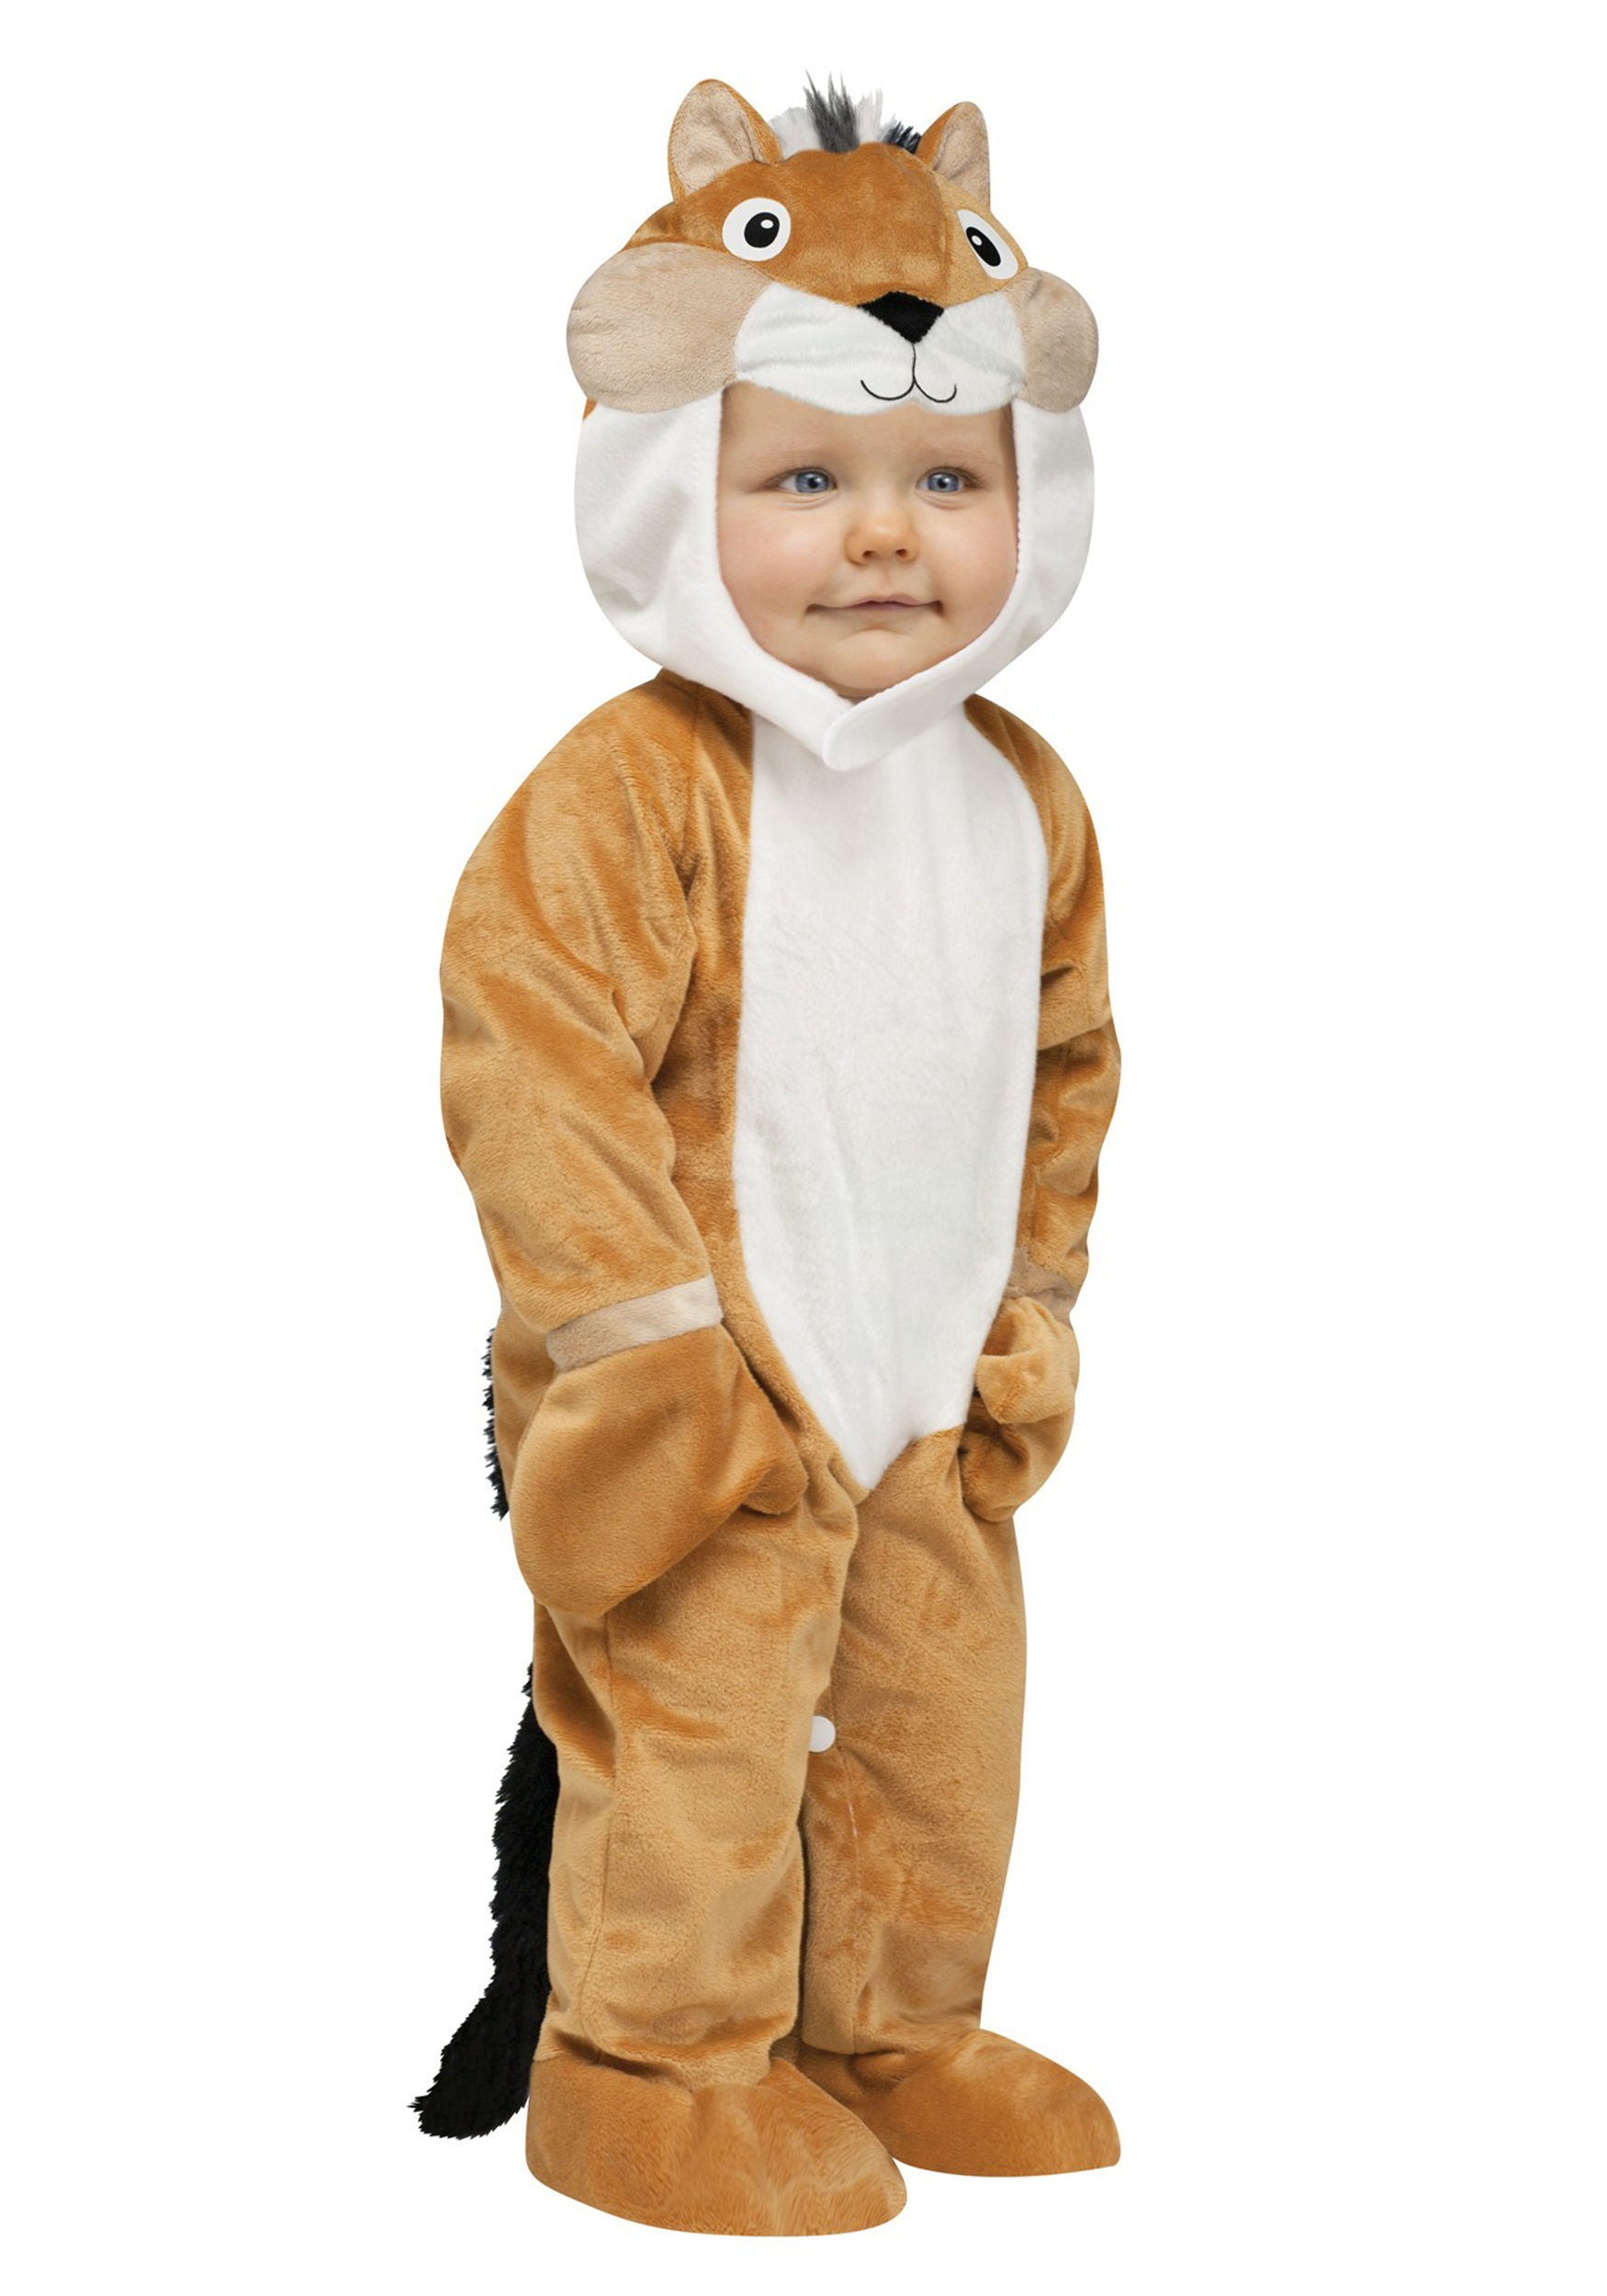 Adult Squirrel Costume. $89.99 · Chipper Chipmunk Costume  sc 1 st  Halloween Costumes & Squirrel Costumes u0026 Suits for Adults u0026 Kids - HalloweenCostumes.com